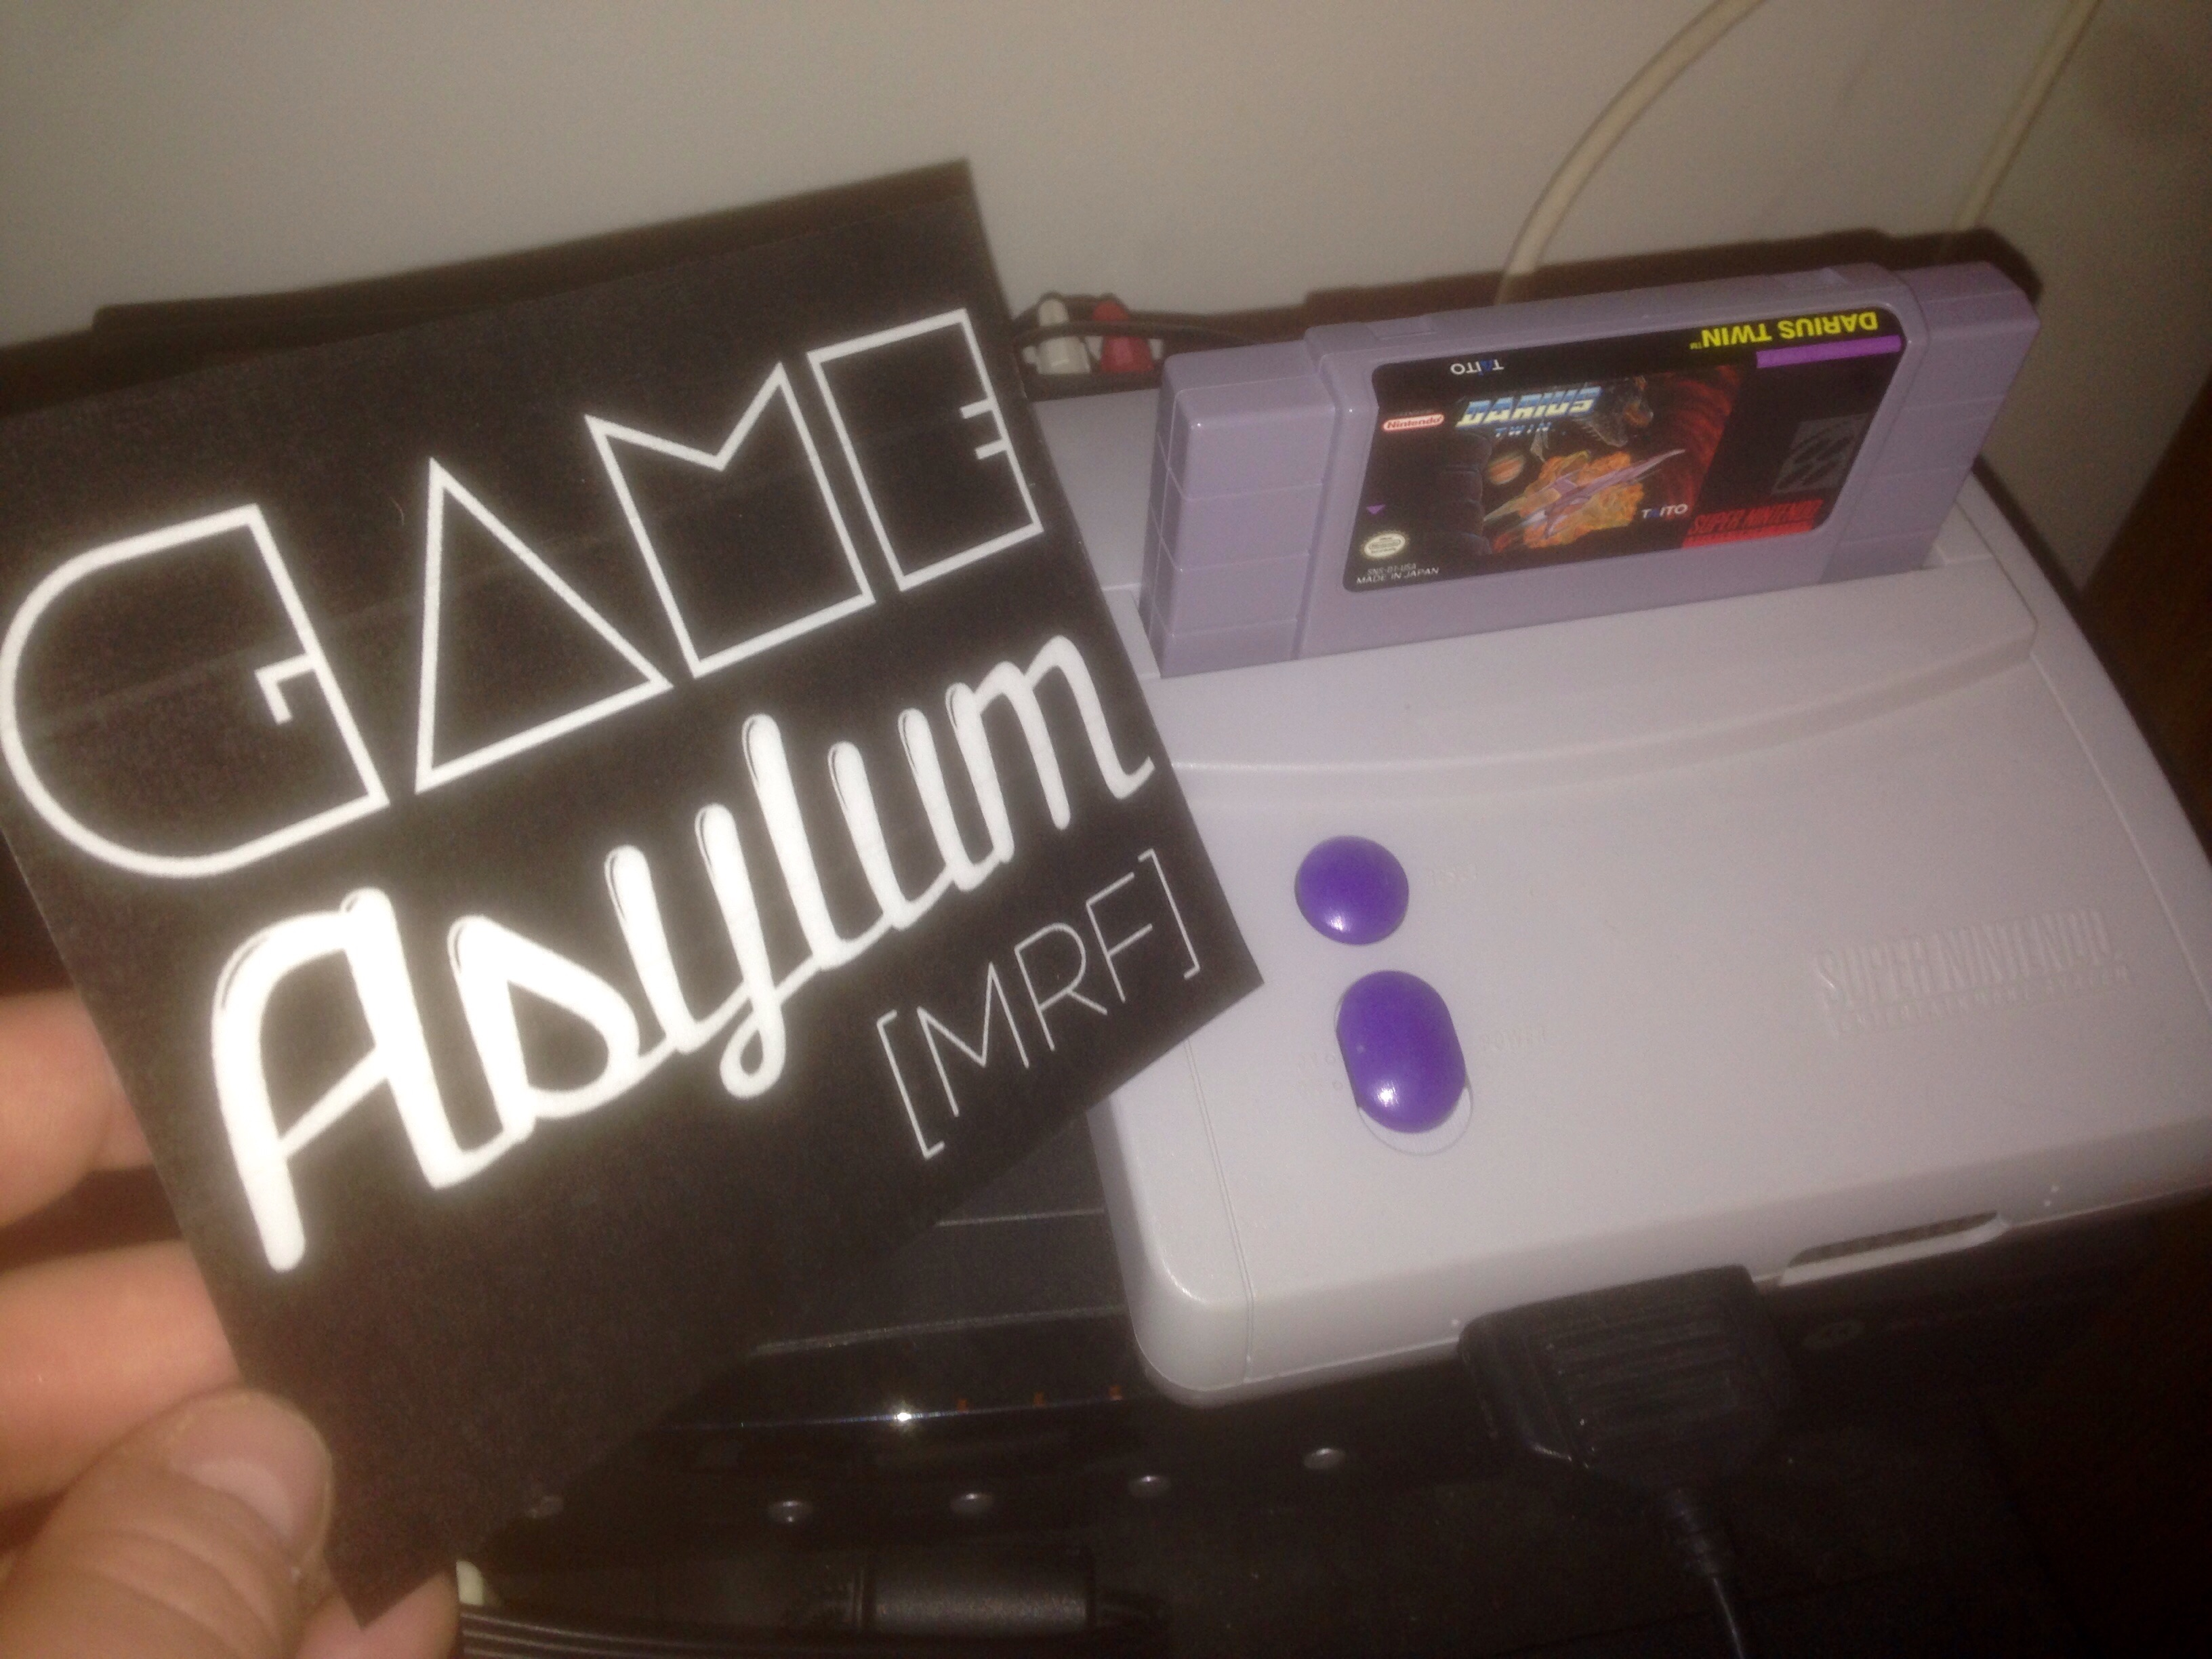 GameAsylum: Darius Twin (SNES/Super Famicom) 922,900 points on 2014-11-10 22:35:49